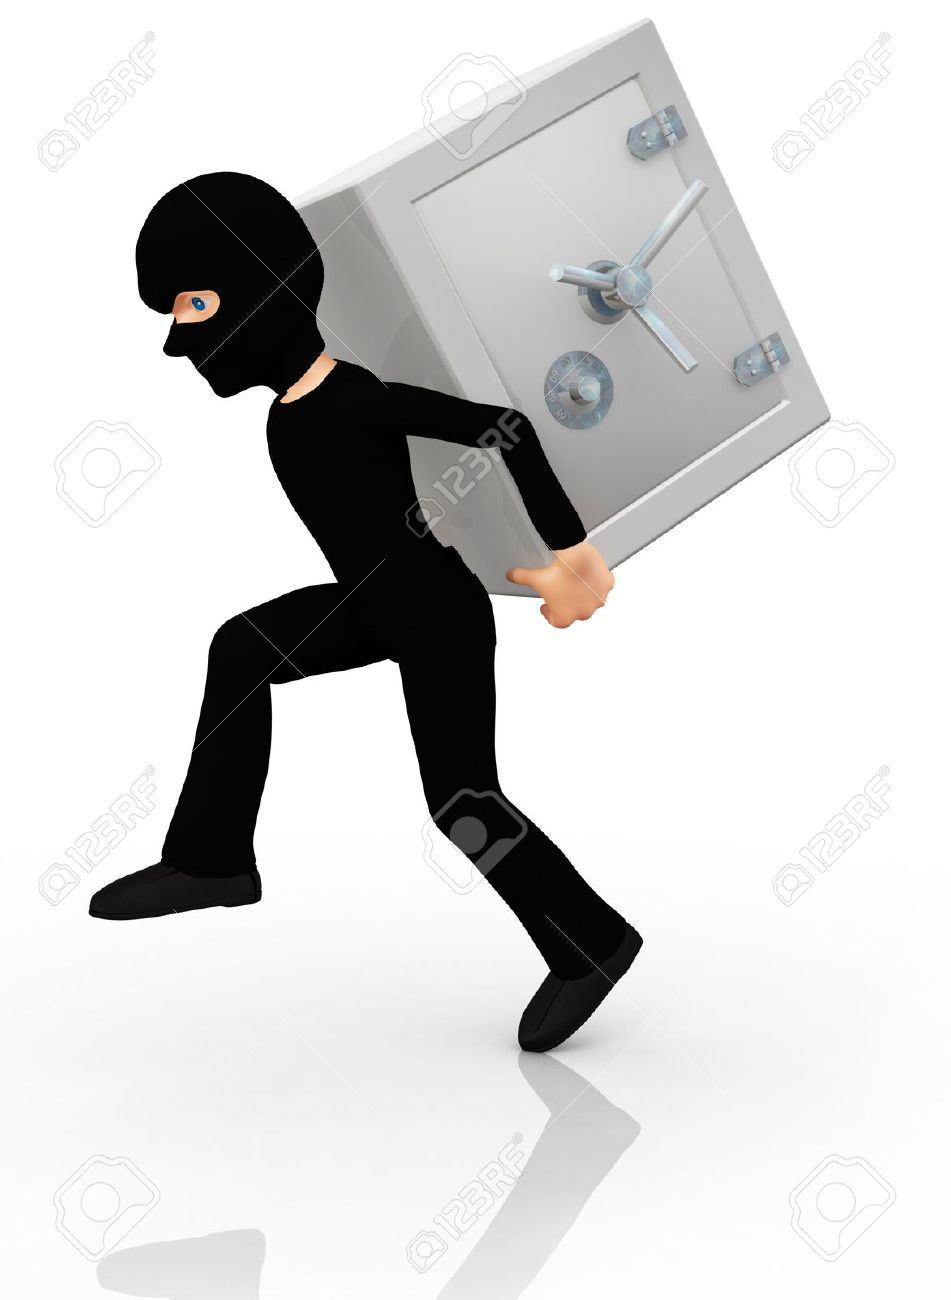 Robber background clipart clip freeuse stock Bank safe clipart no background - ClipartFest clip freeuse stock